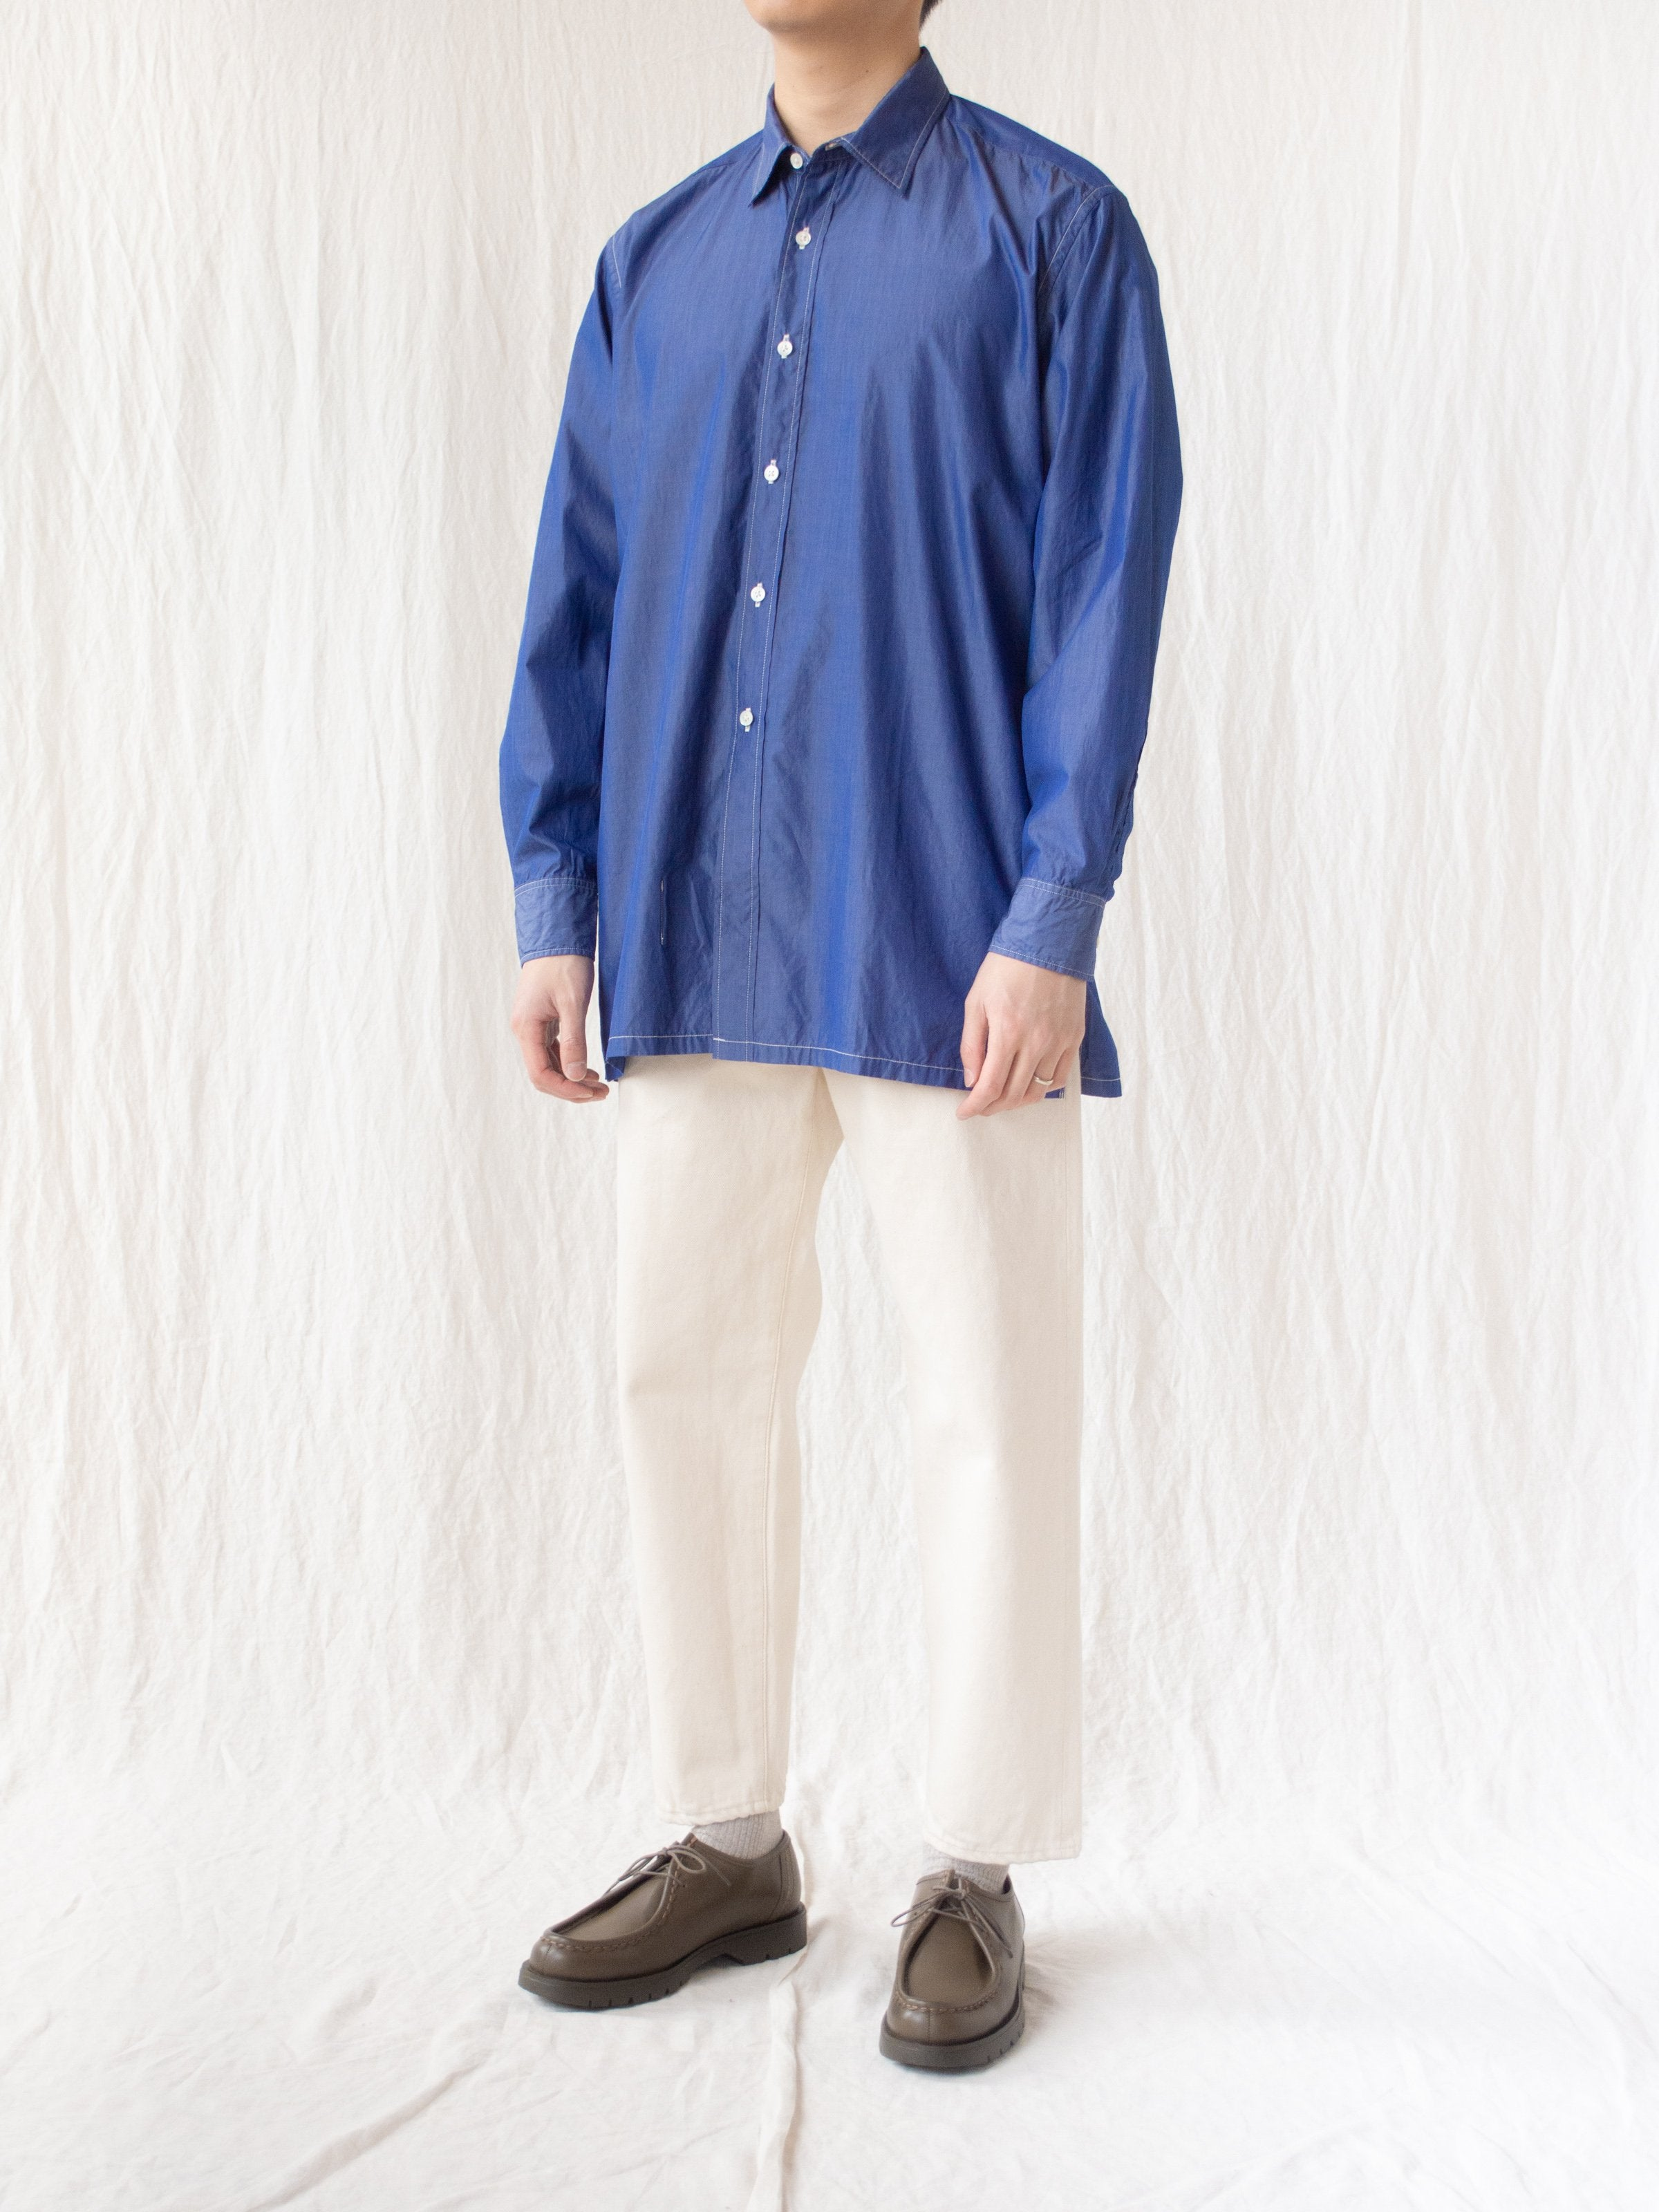 Namu Shop - Kaptain Sunshine Regular Collar Shirt - Blue Chambray